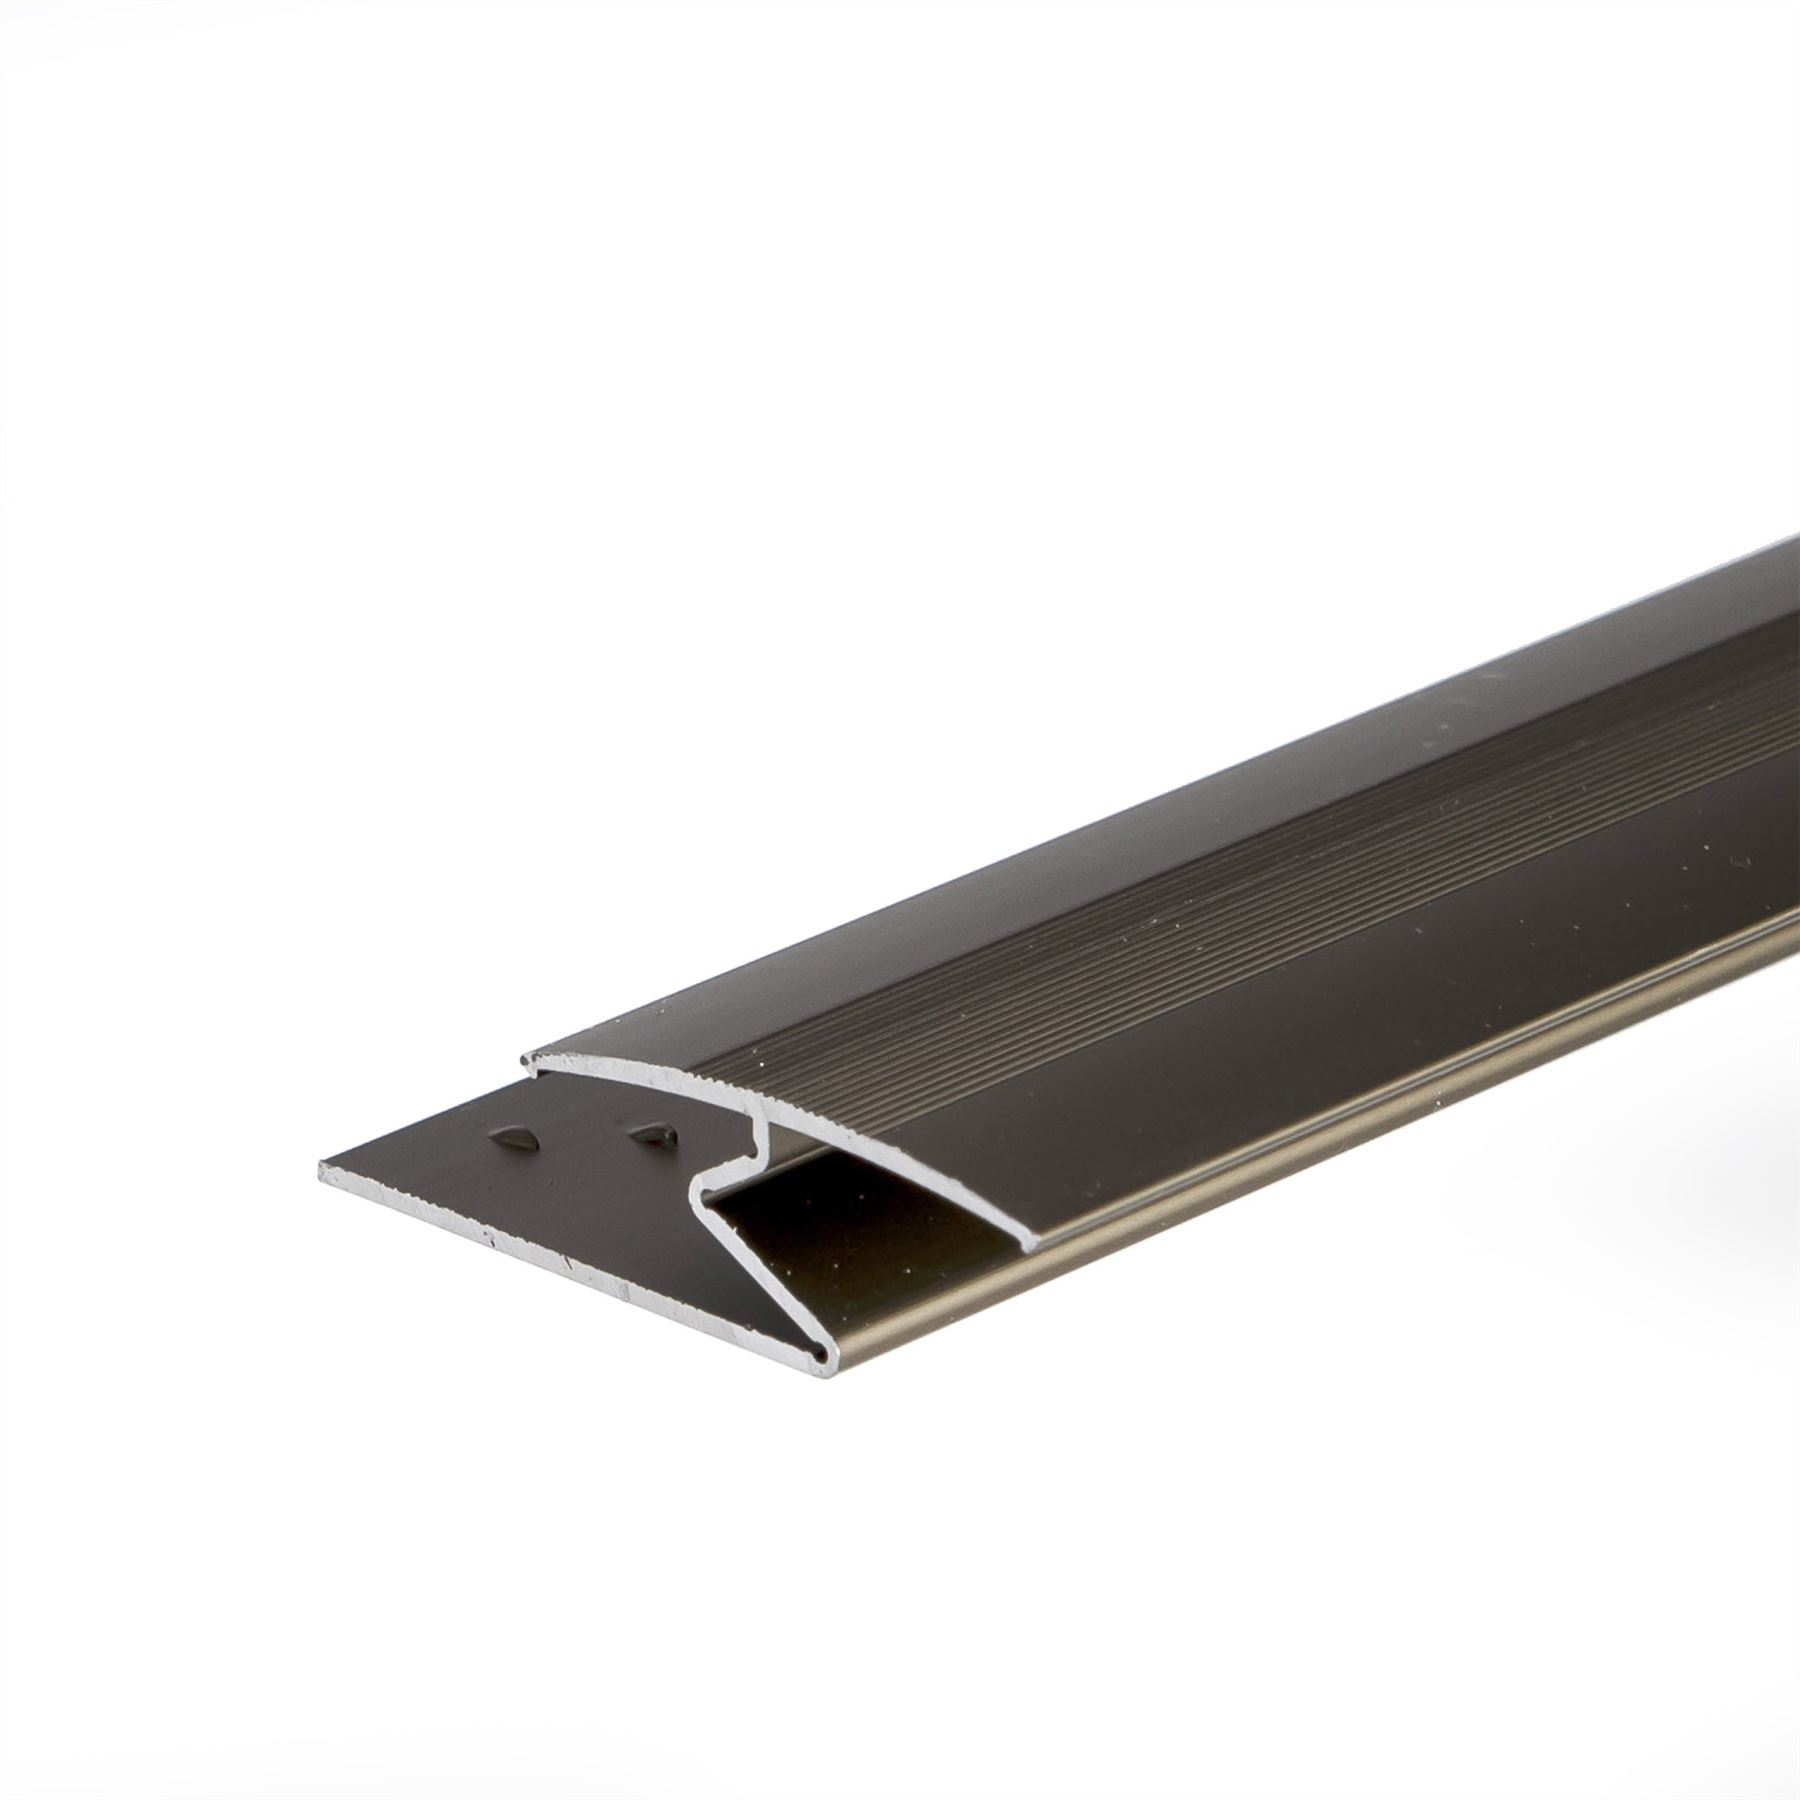 1000mm-x-35mm-ANODISED-ALUMINIUM-Z-EDGE-Carpet-Profile-DOOR-FLOOR-BAR-TRIM-C69